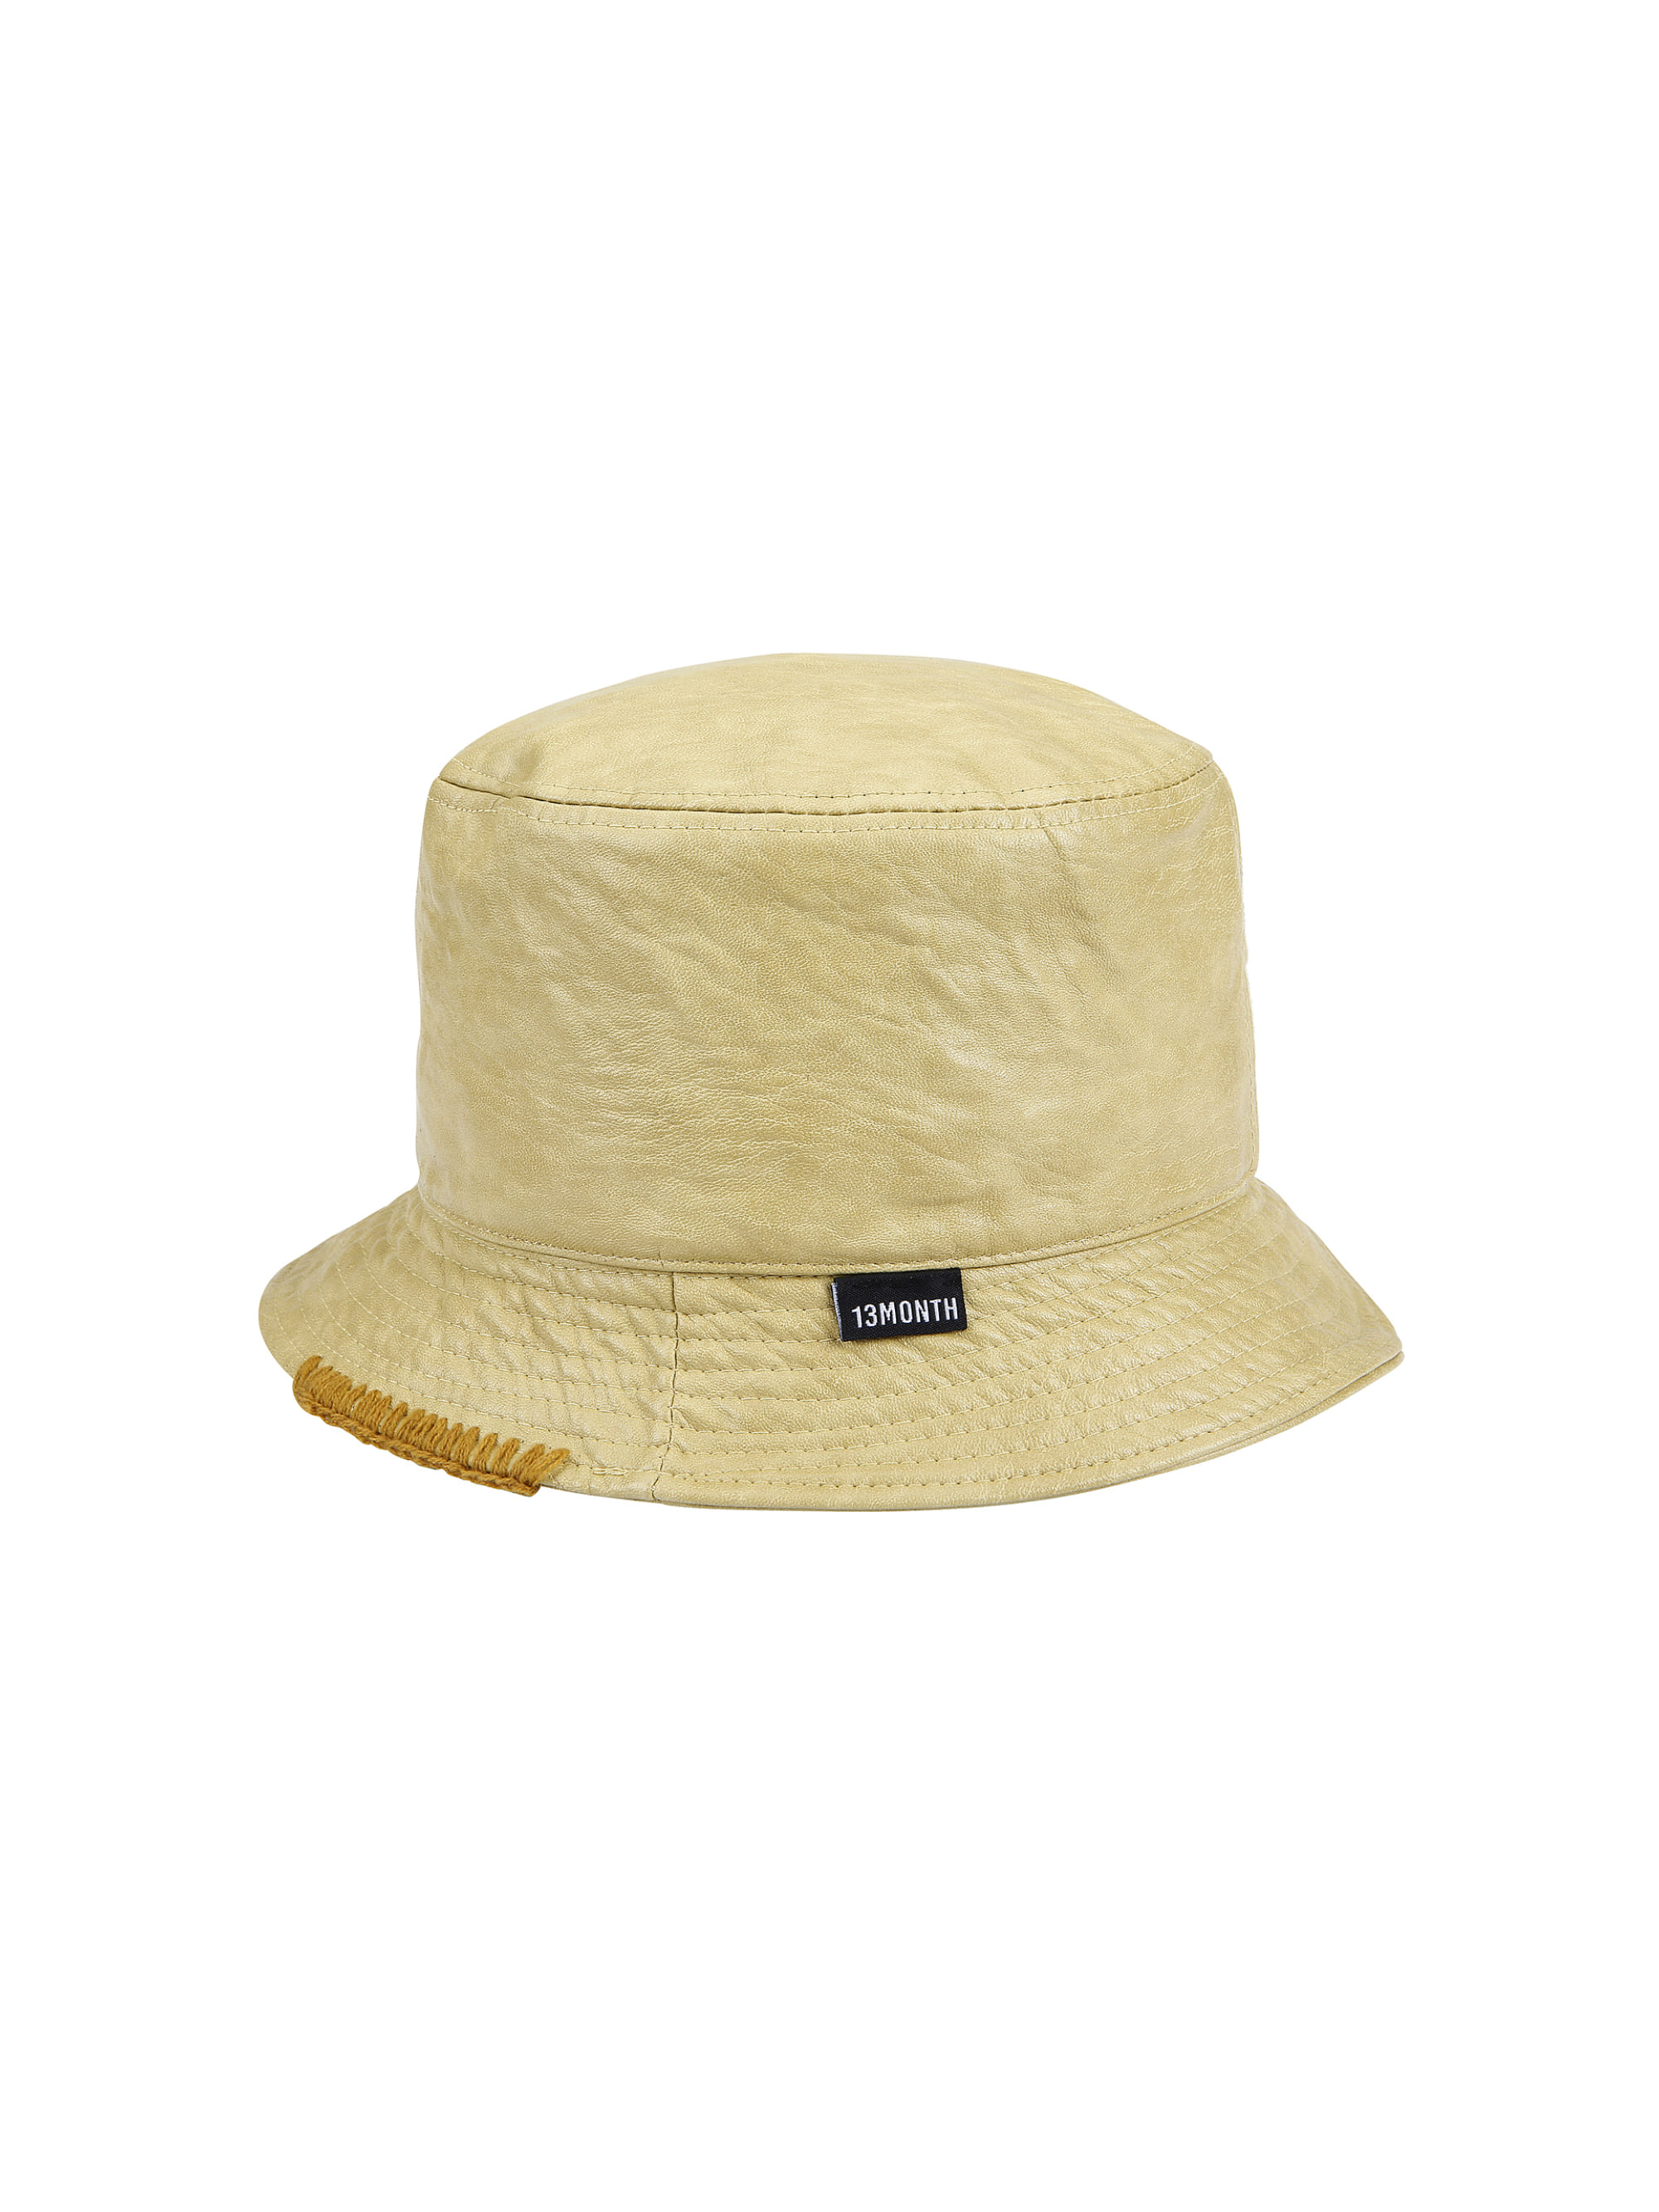 LEATHER BUCKET HAT (MUSTARD)